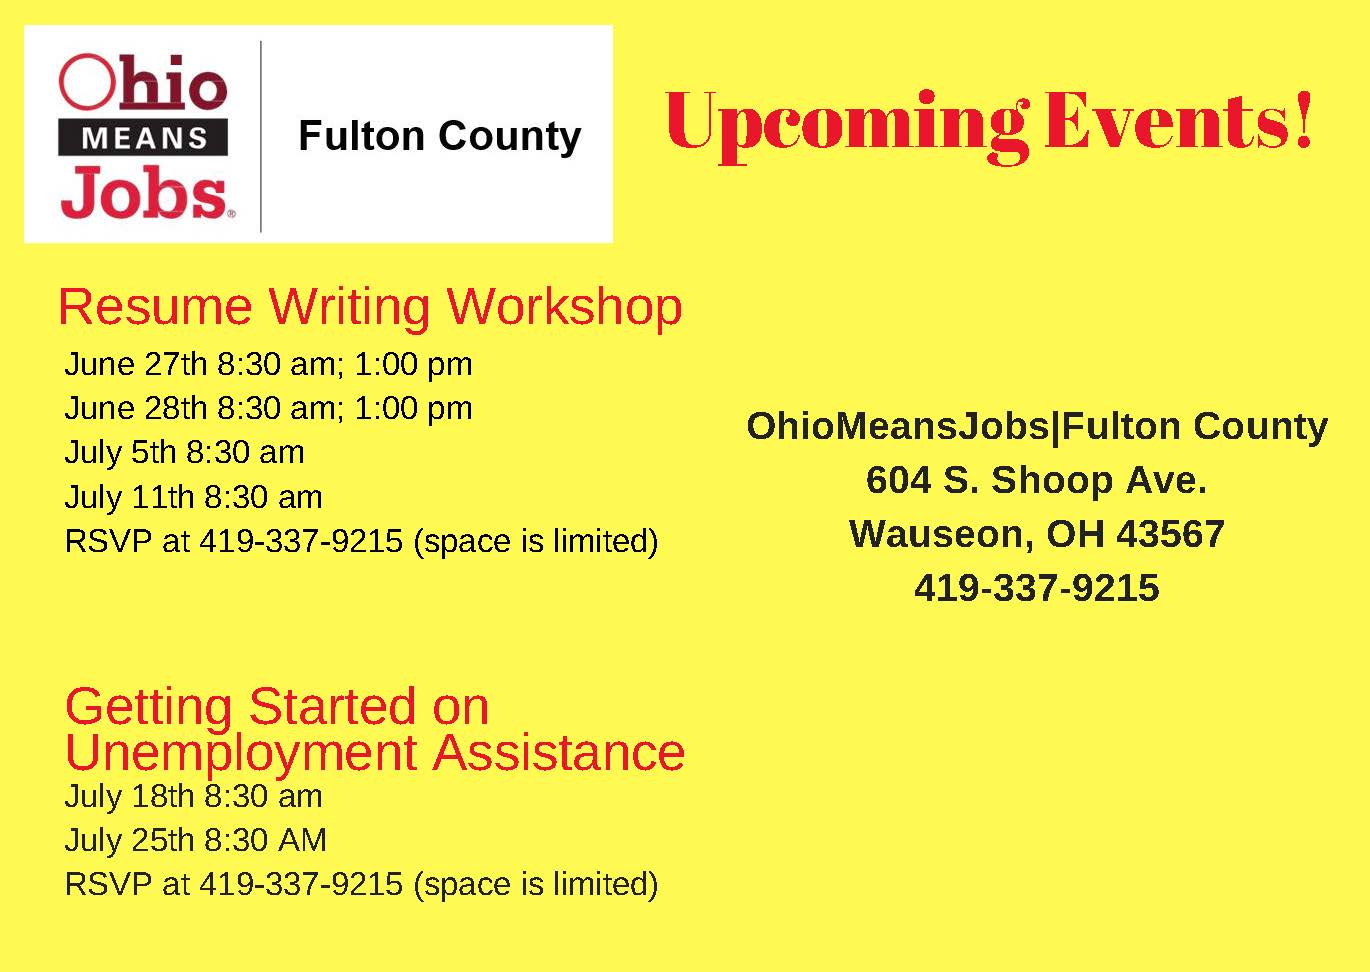 Resume Writing Workshops and Getting Started on Unemployment Assistance Flyer